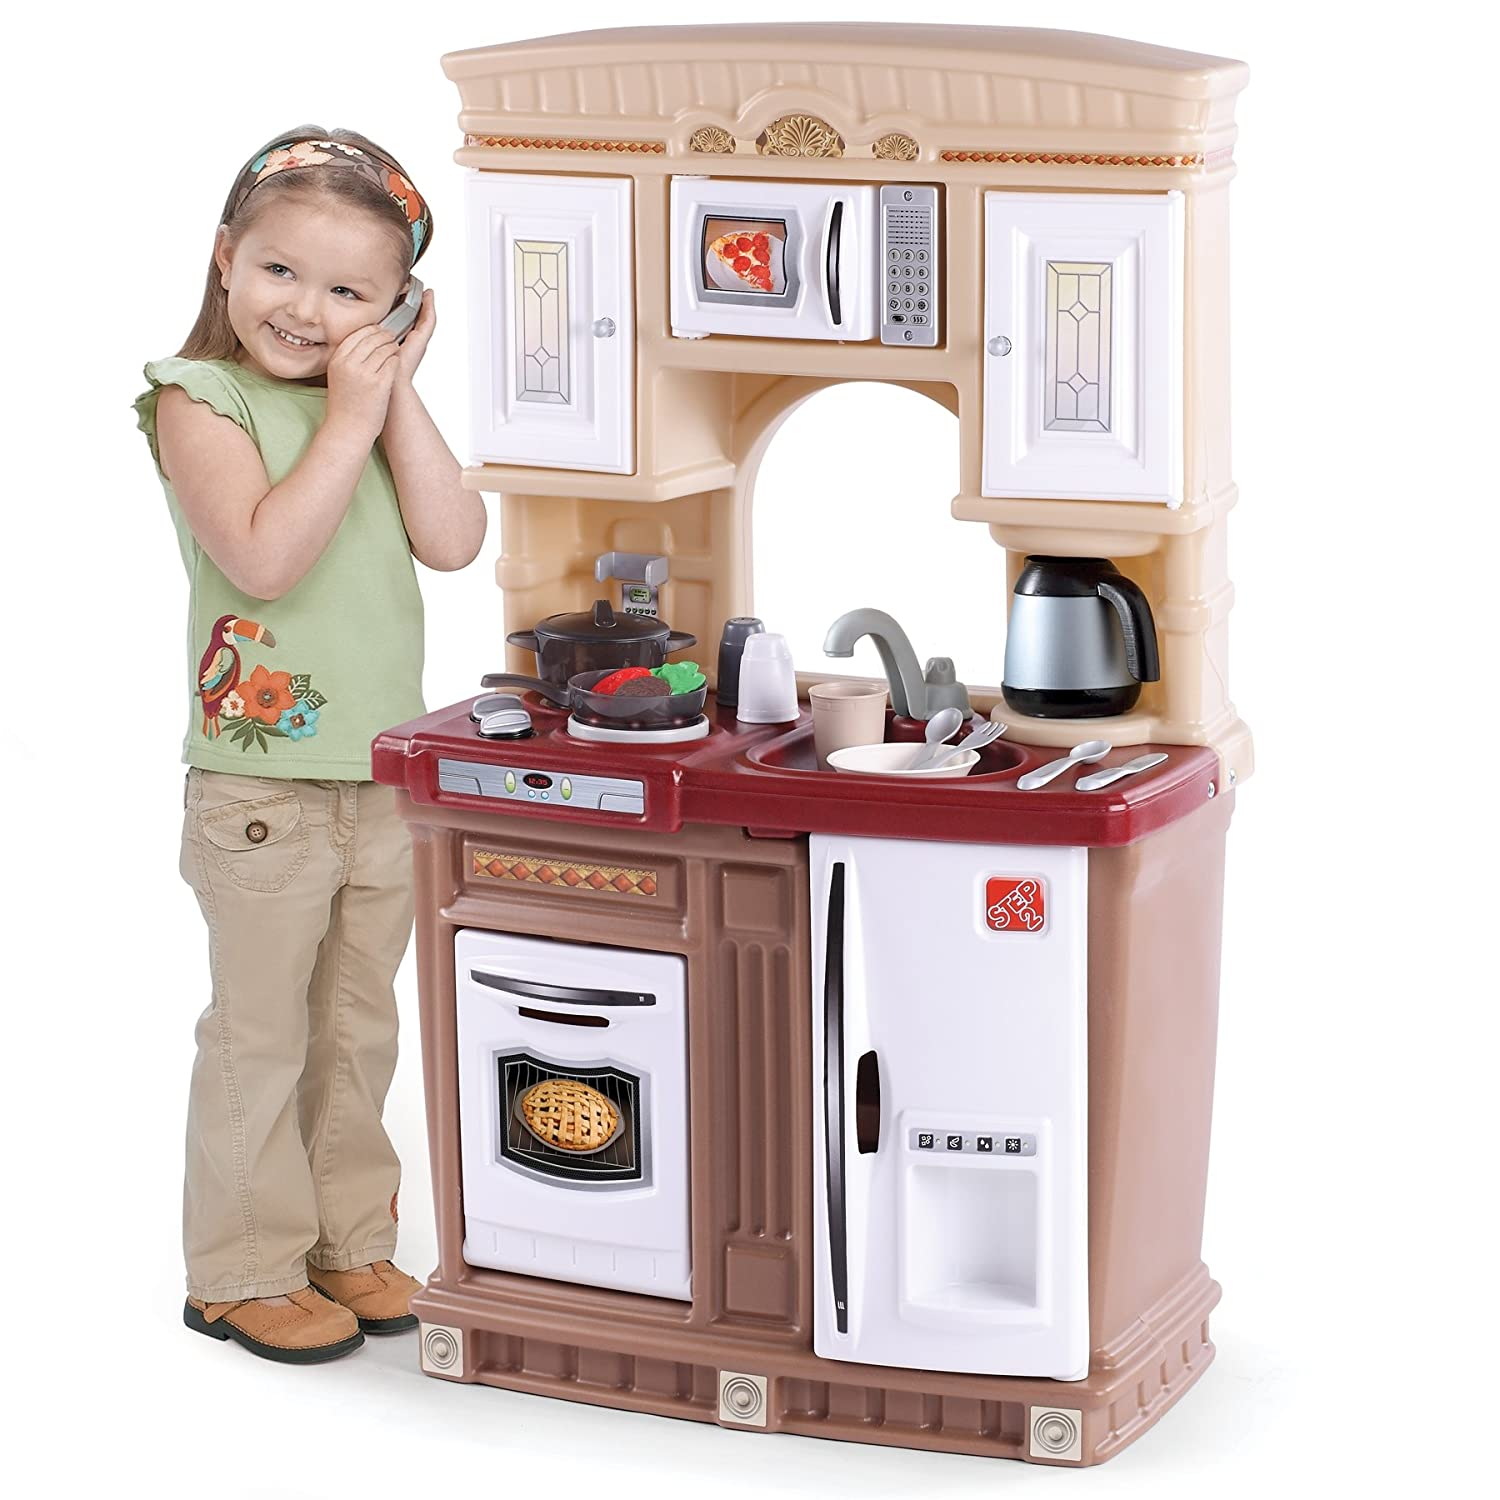 Amazon.com: Step2 Lifestyle Fresh Accents Kitchen: Toys